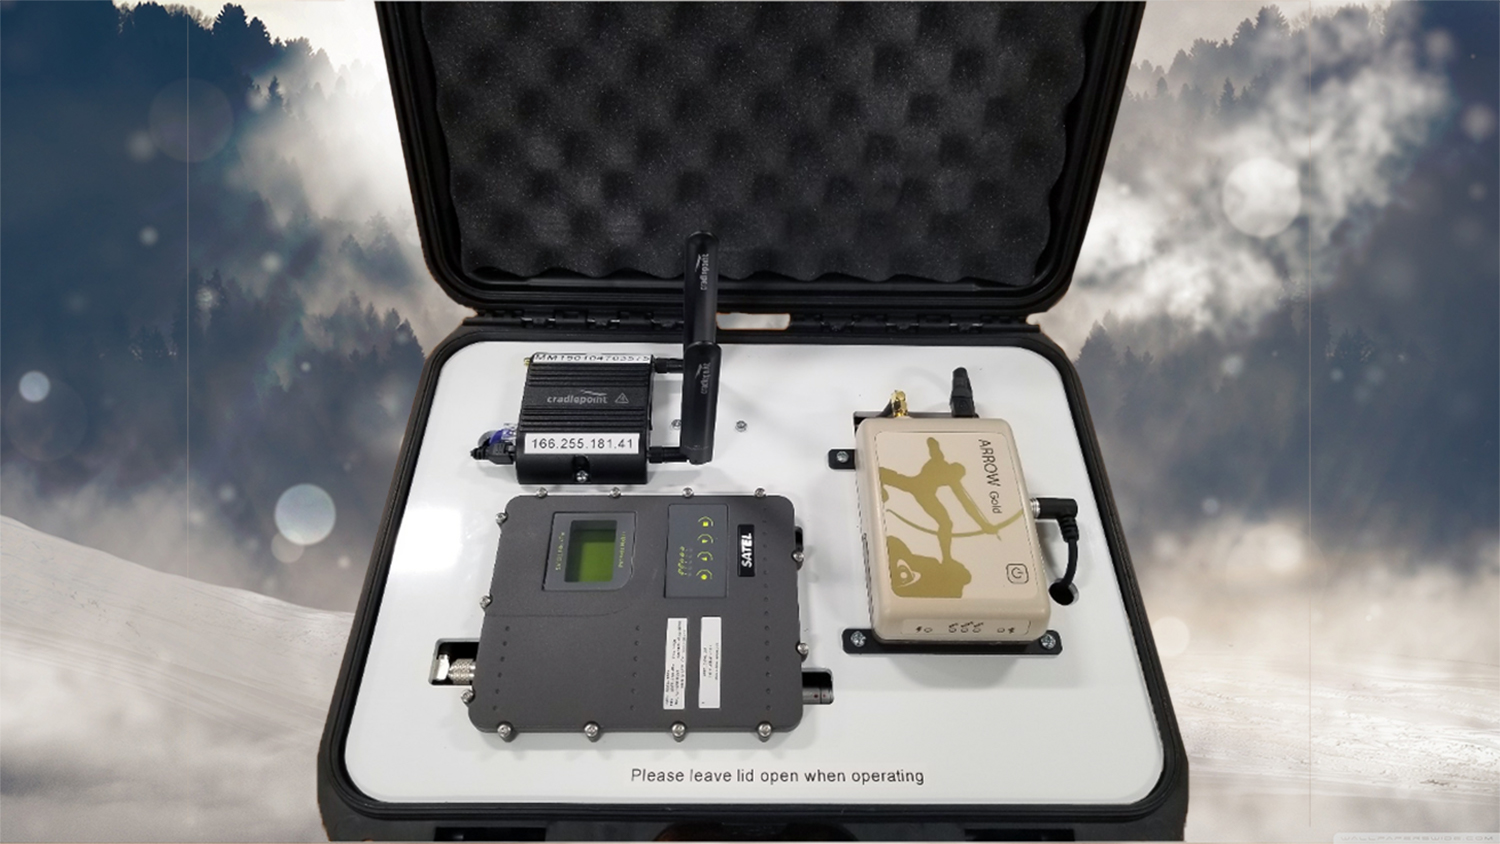 How to set up your own RTK base with Arrow GNSS receivers GPS GIS mobile base station rover Arrow Gold